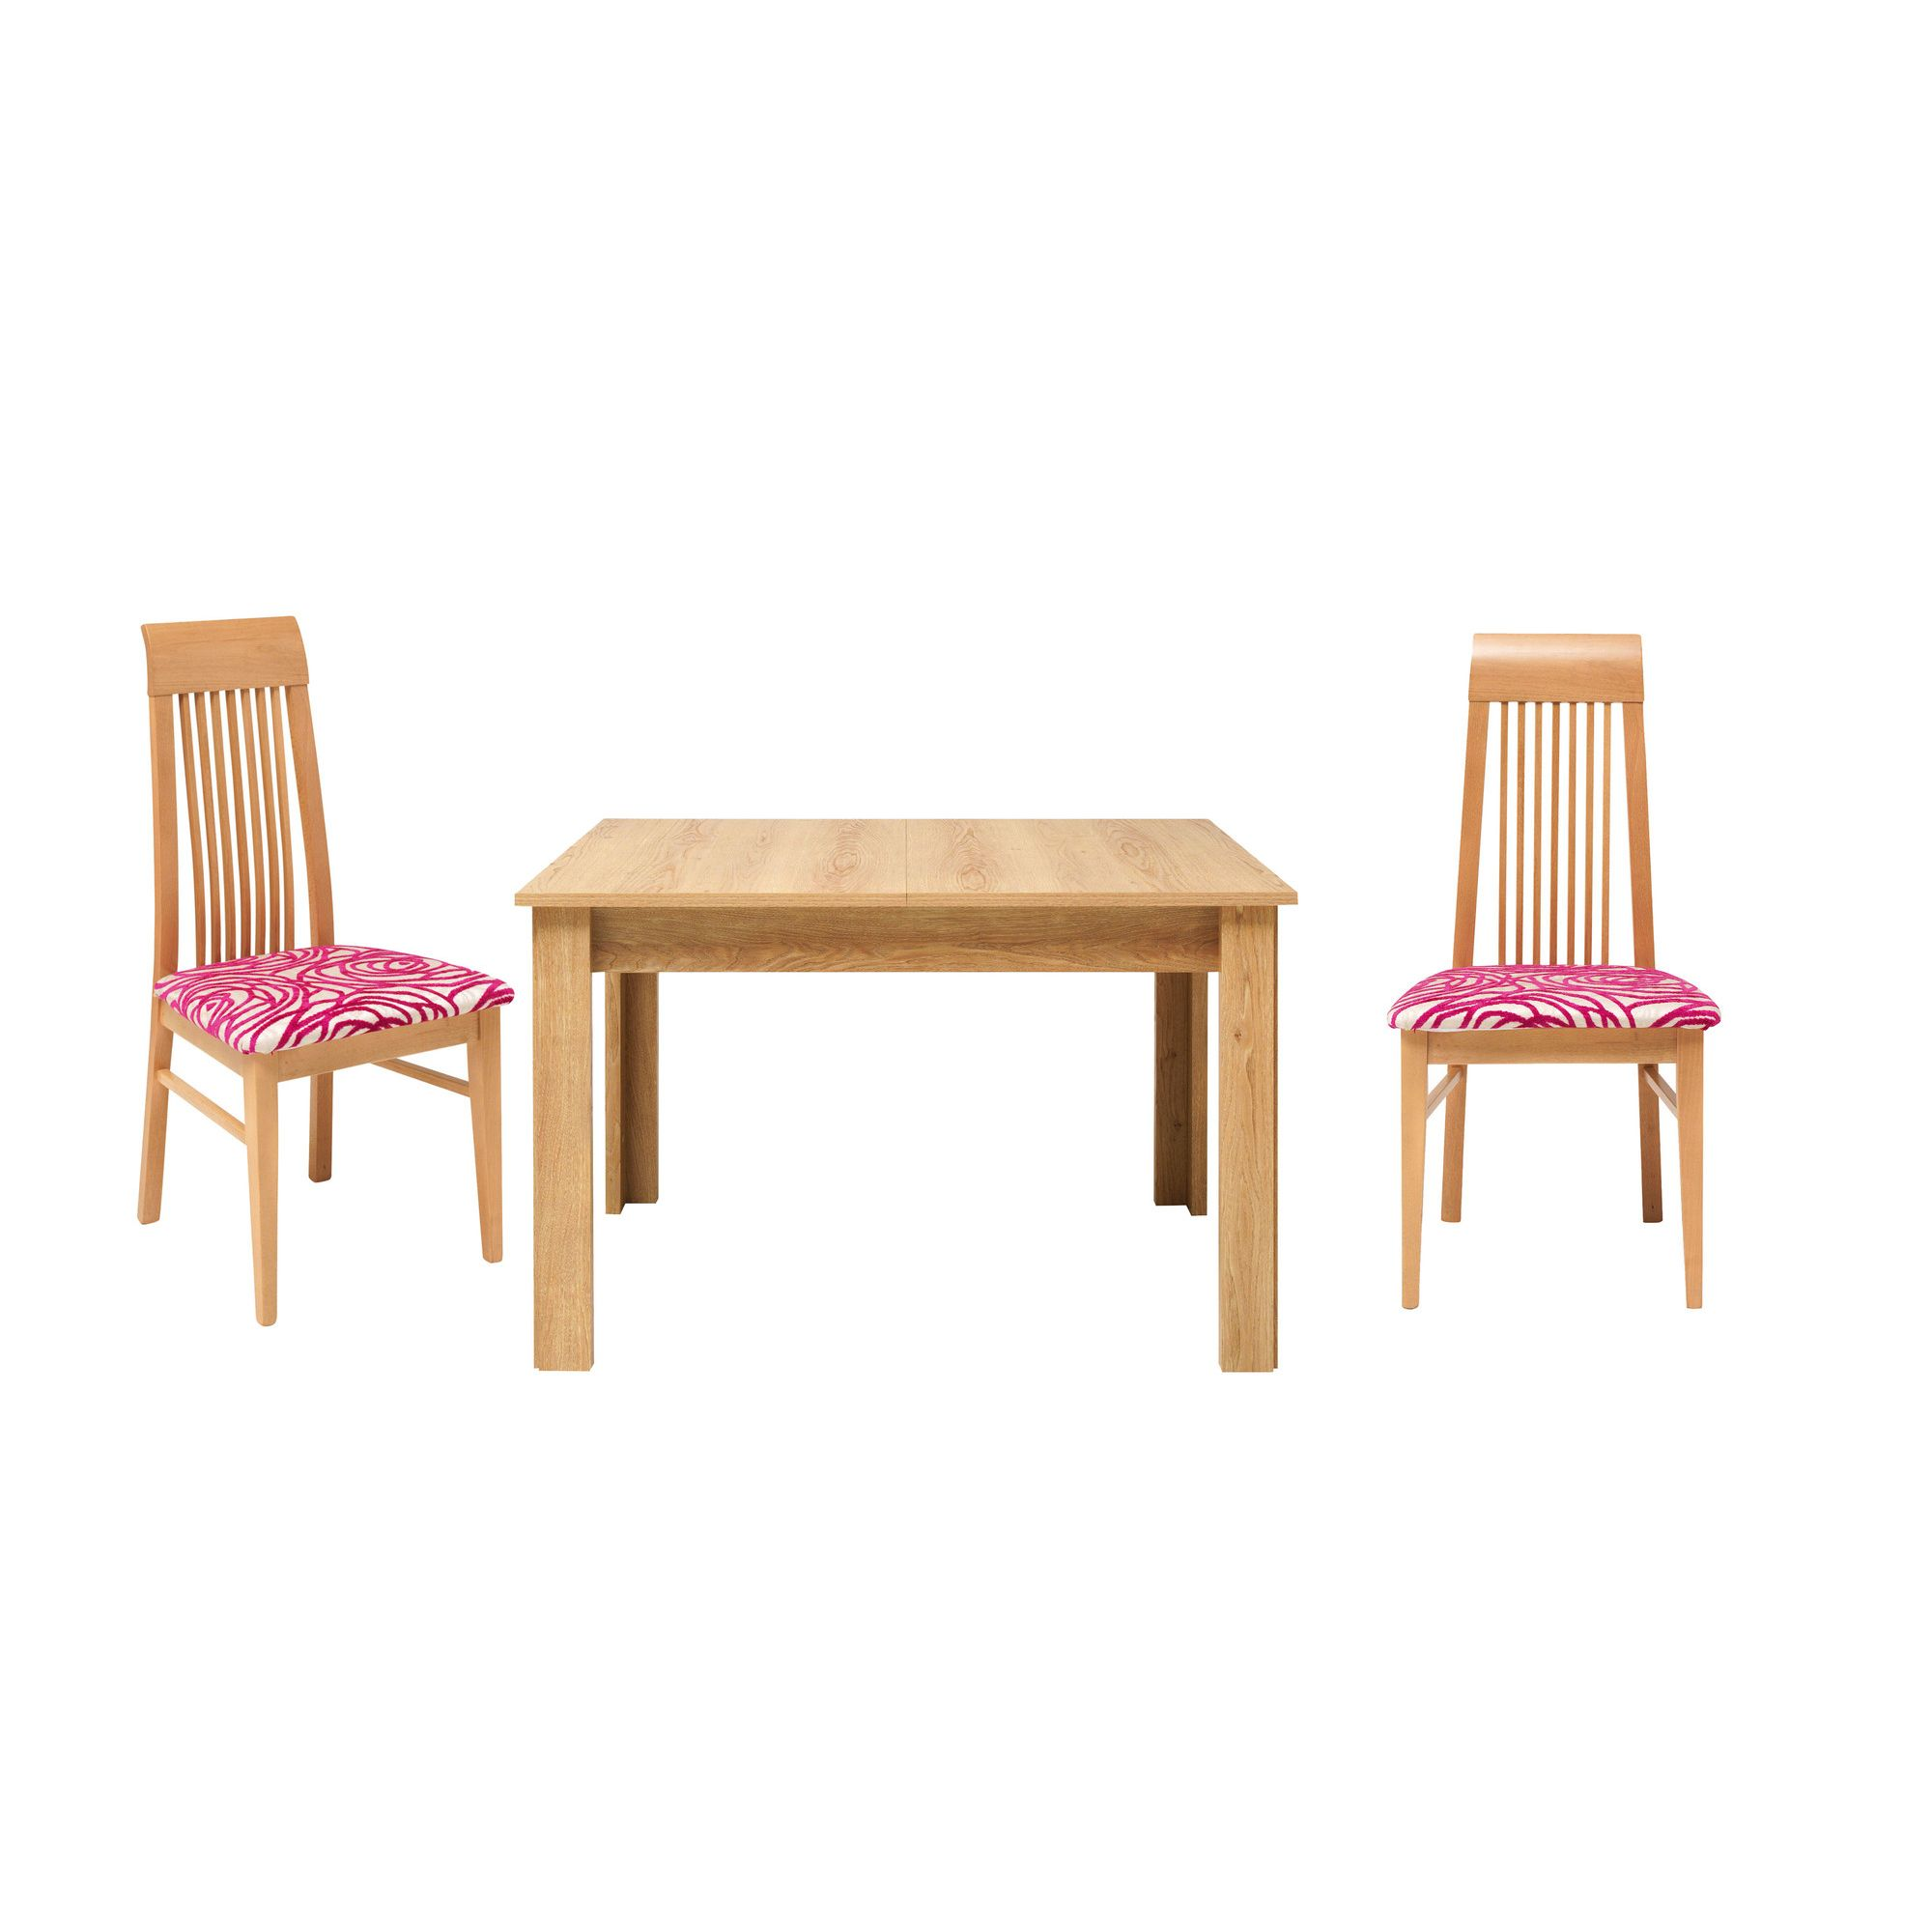 Caxton Darwin Dining Table Set with 6 Slatted Back Chair in Chestnut at Tesco Direct